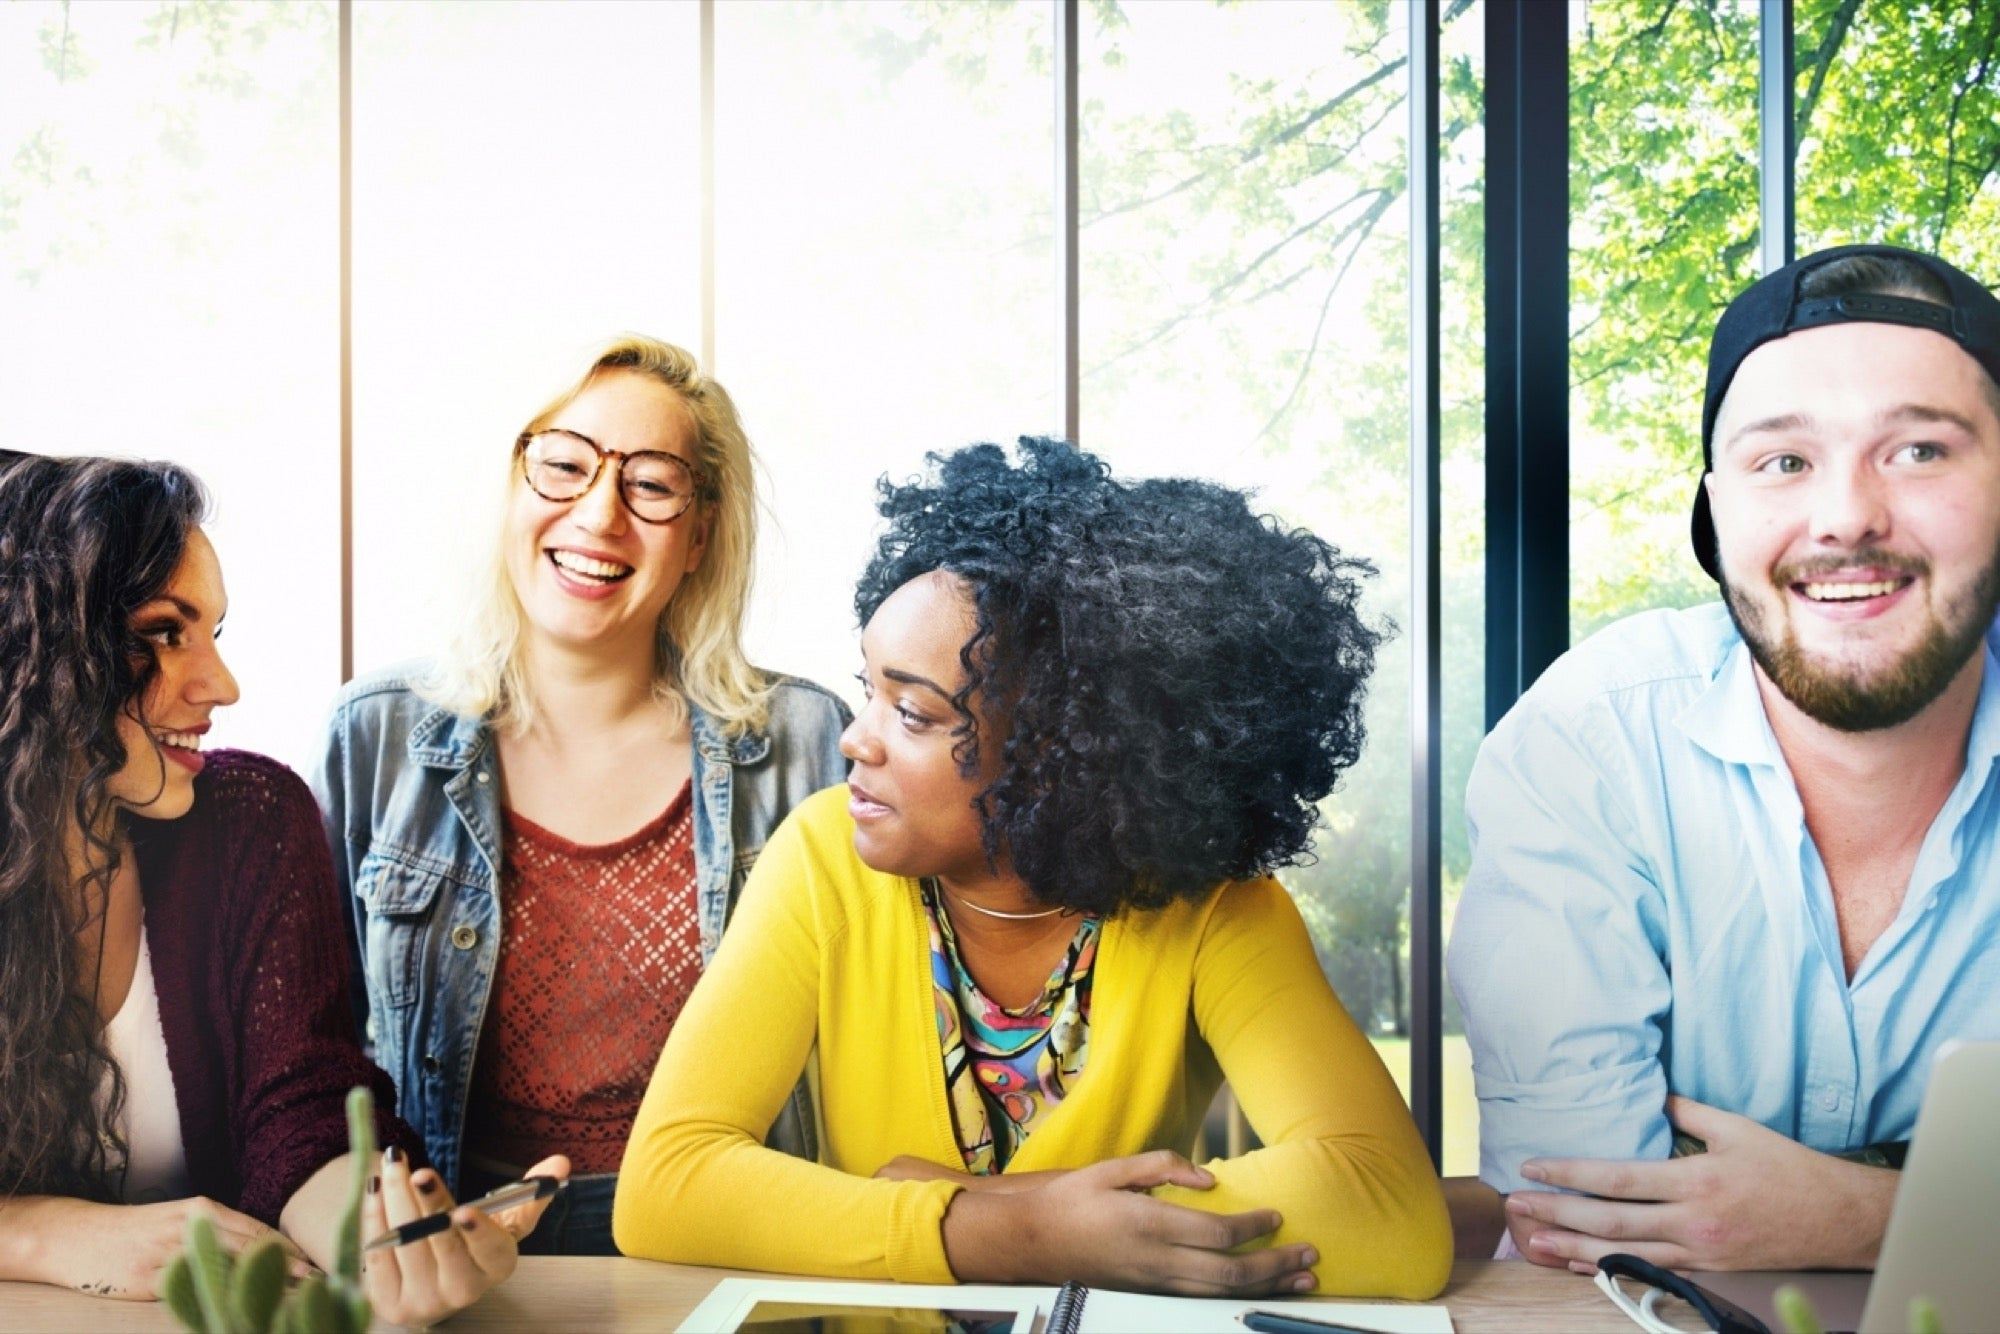 Methods of accommodating cultural diversity in the workplace